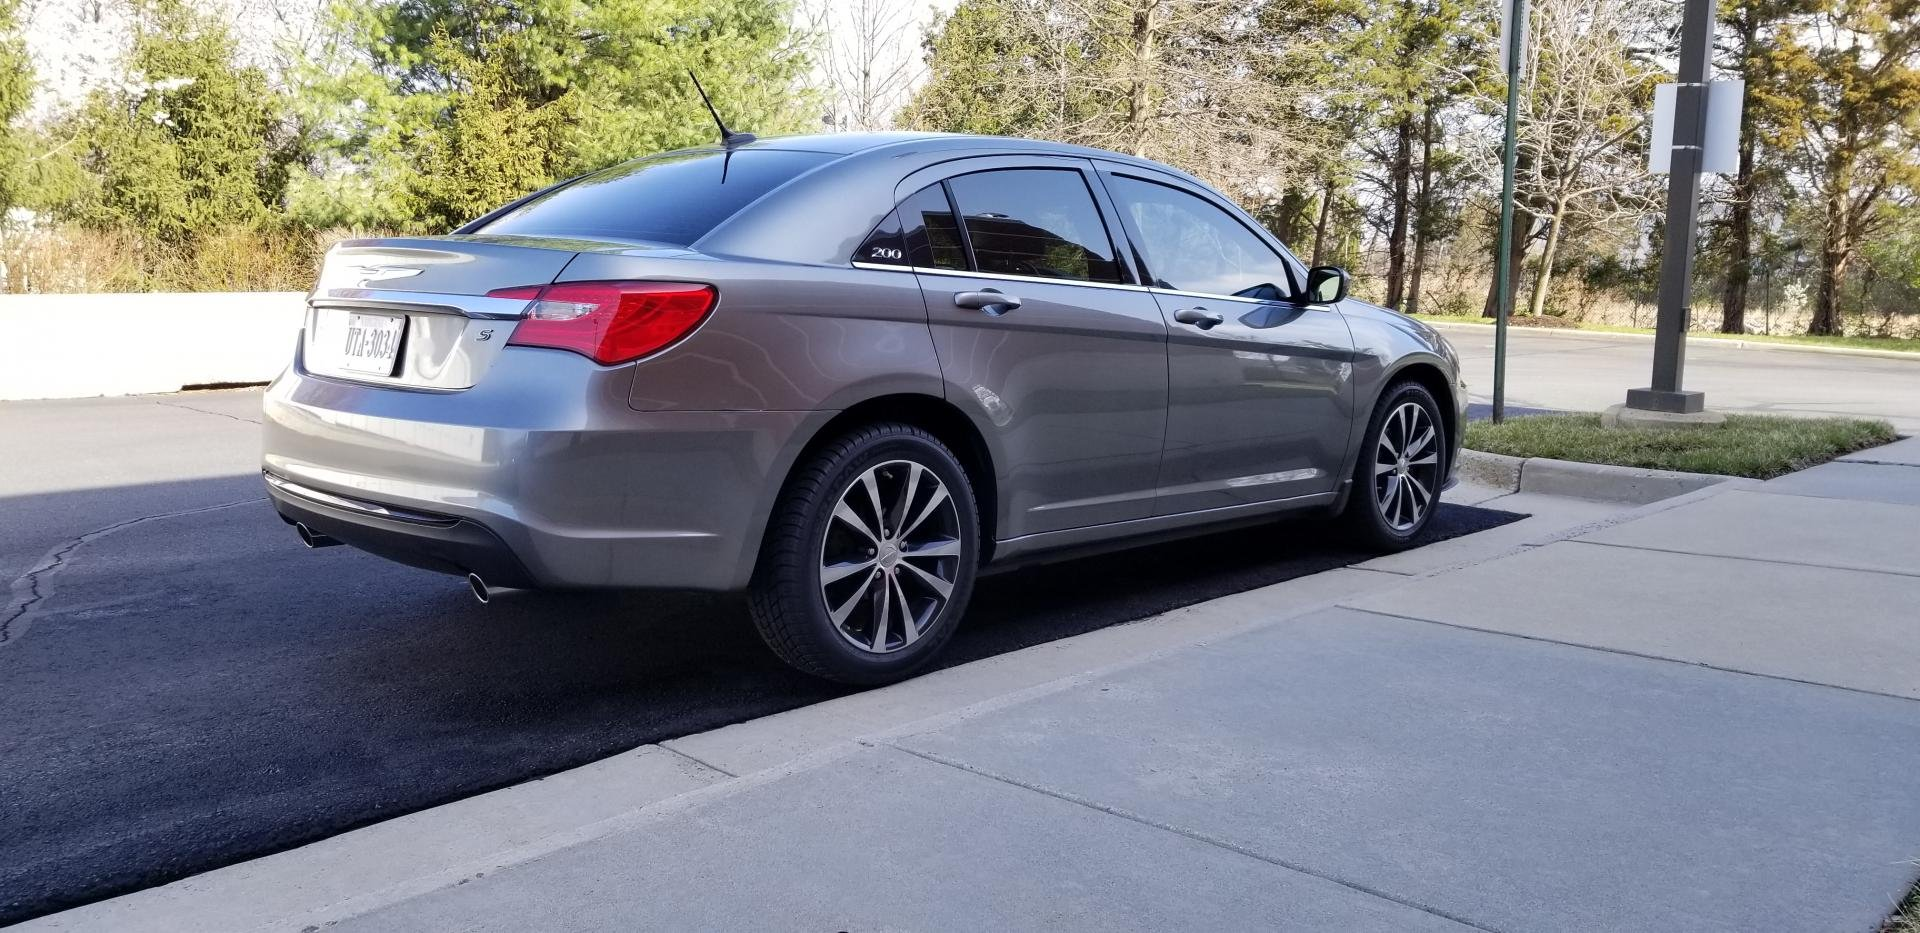 New Member! An introduction to my 40K mile 2012 200 S.-20190406_100847.jpg